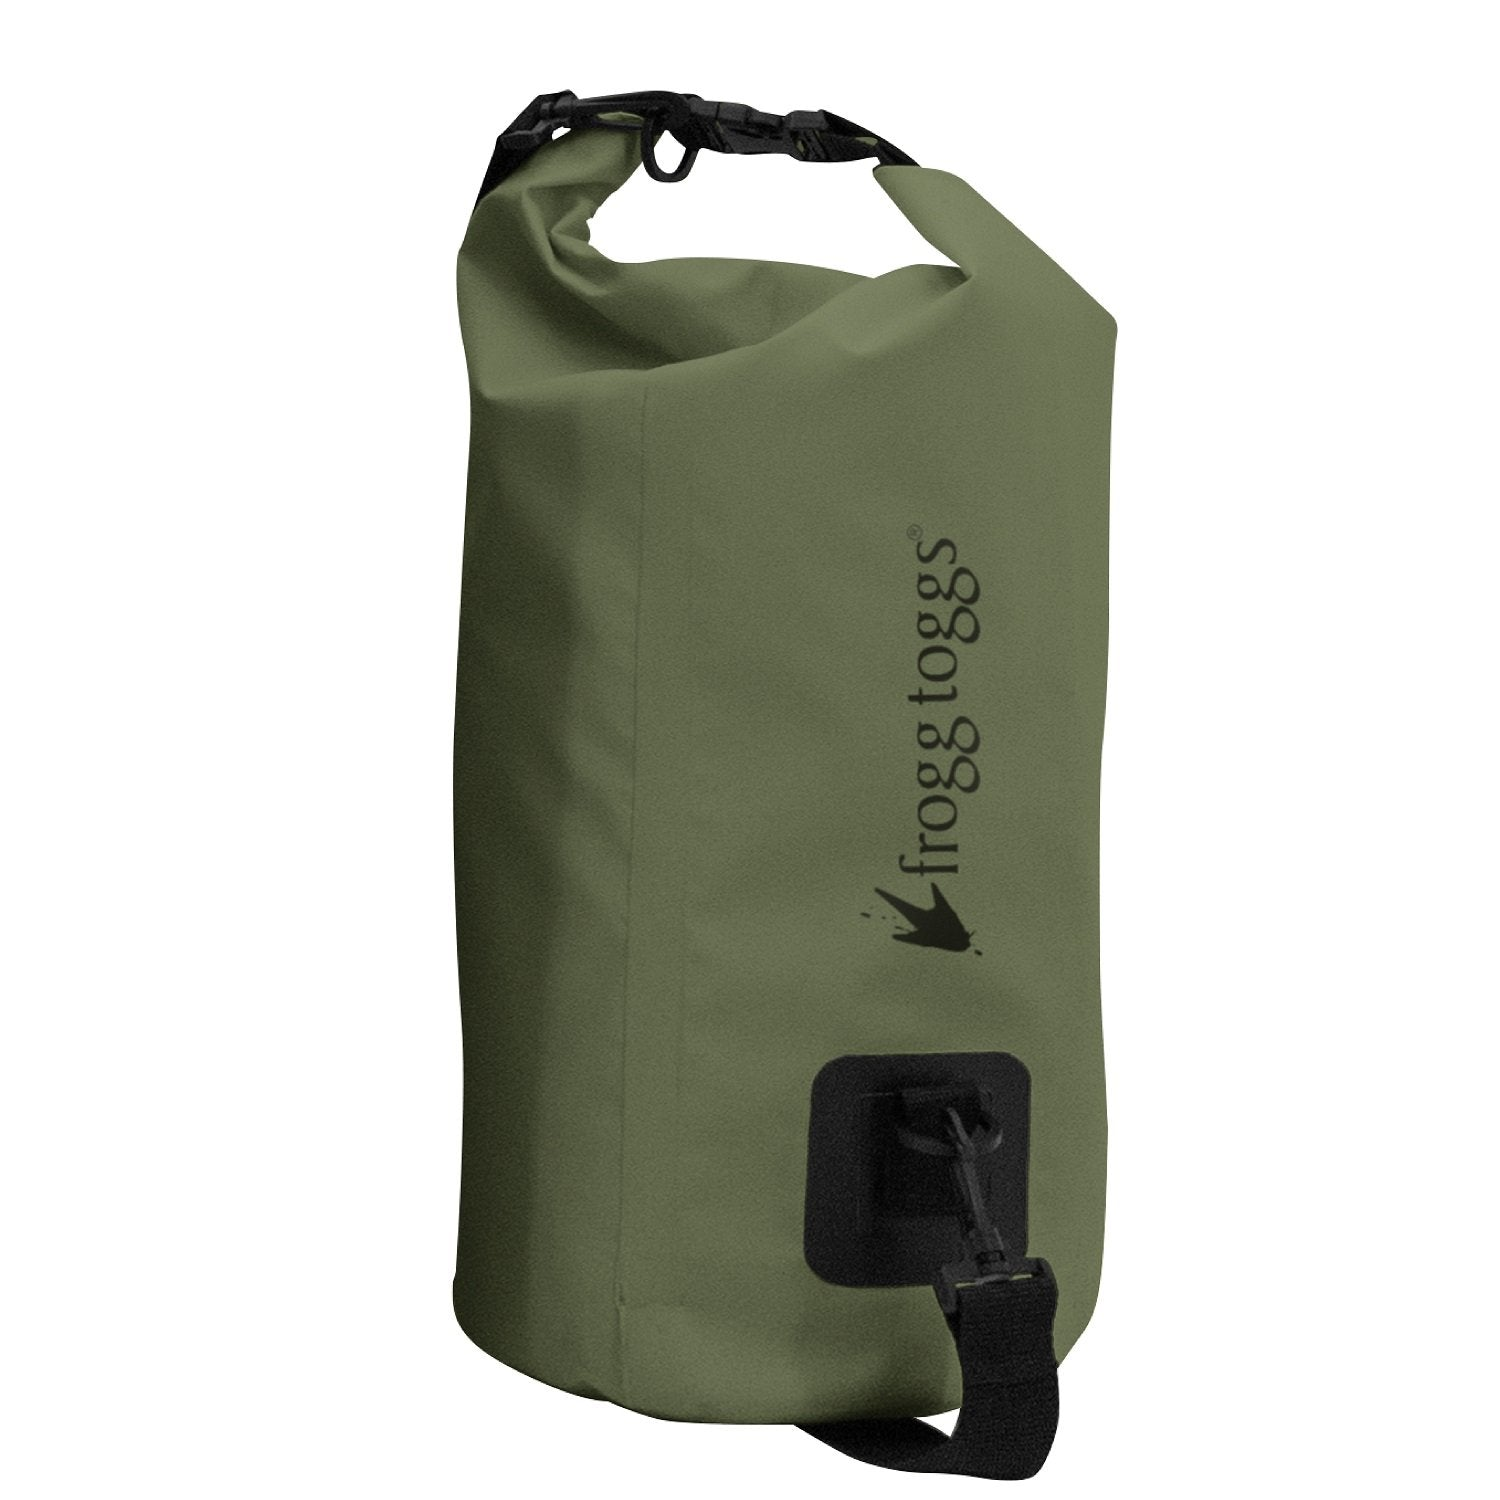 Frogg Toggs PVC Tarp Waterprf Dry Bag /Cooler Insert S Green